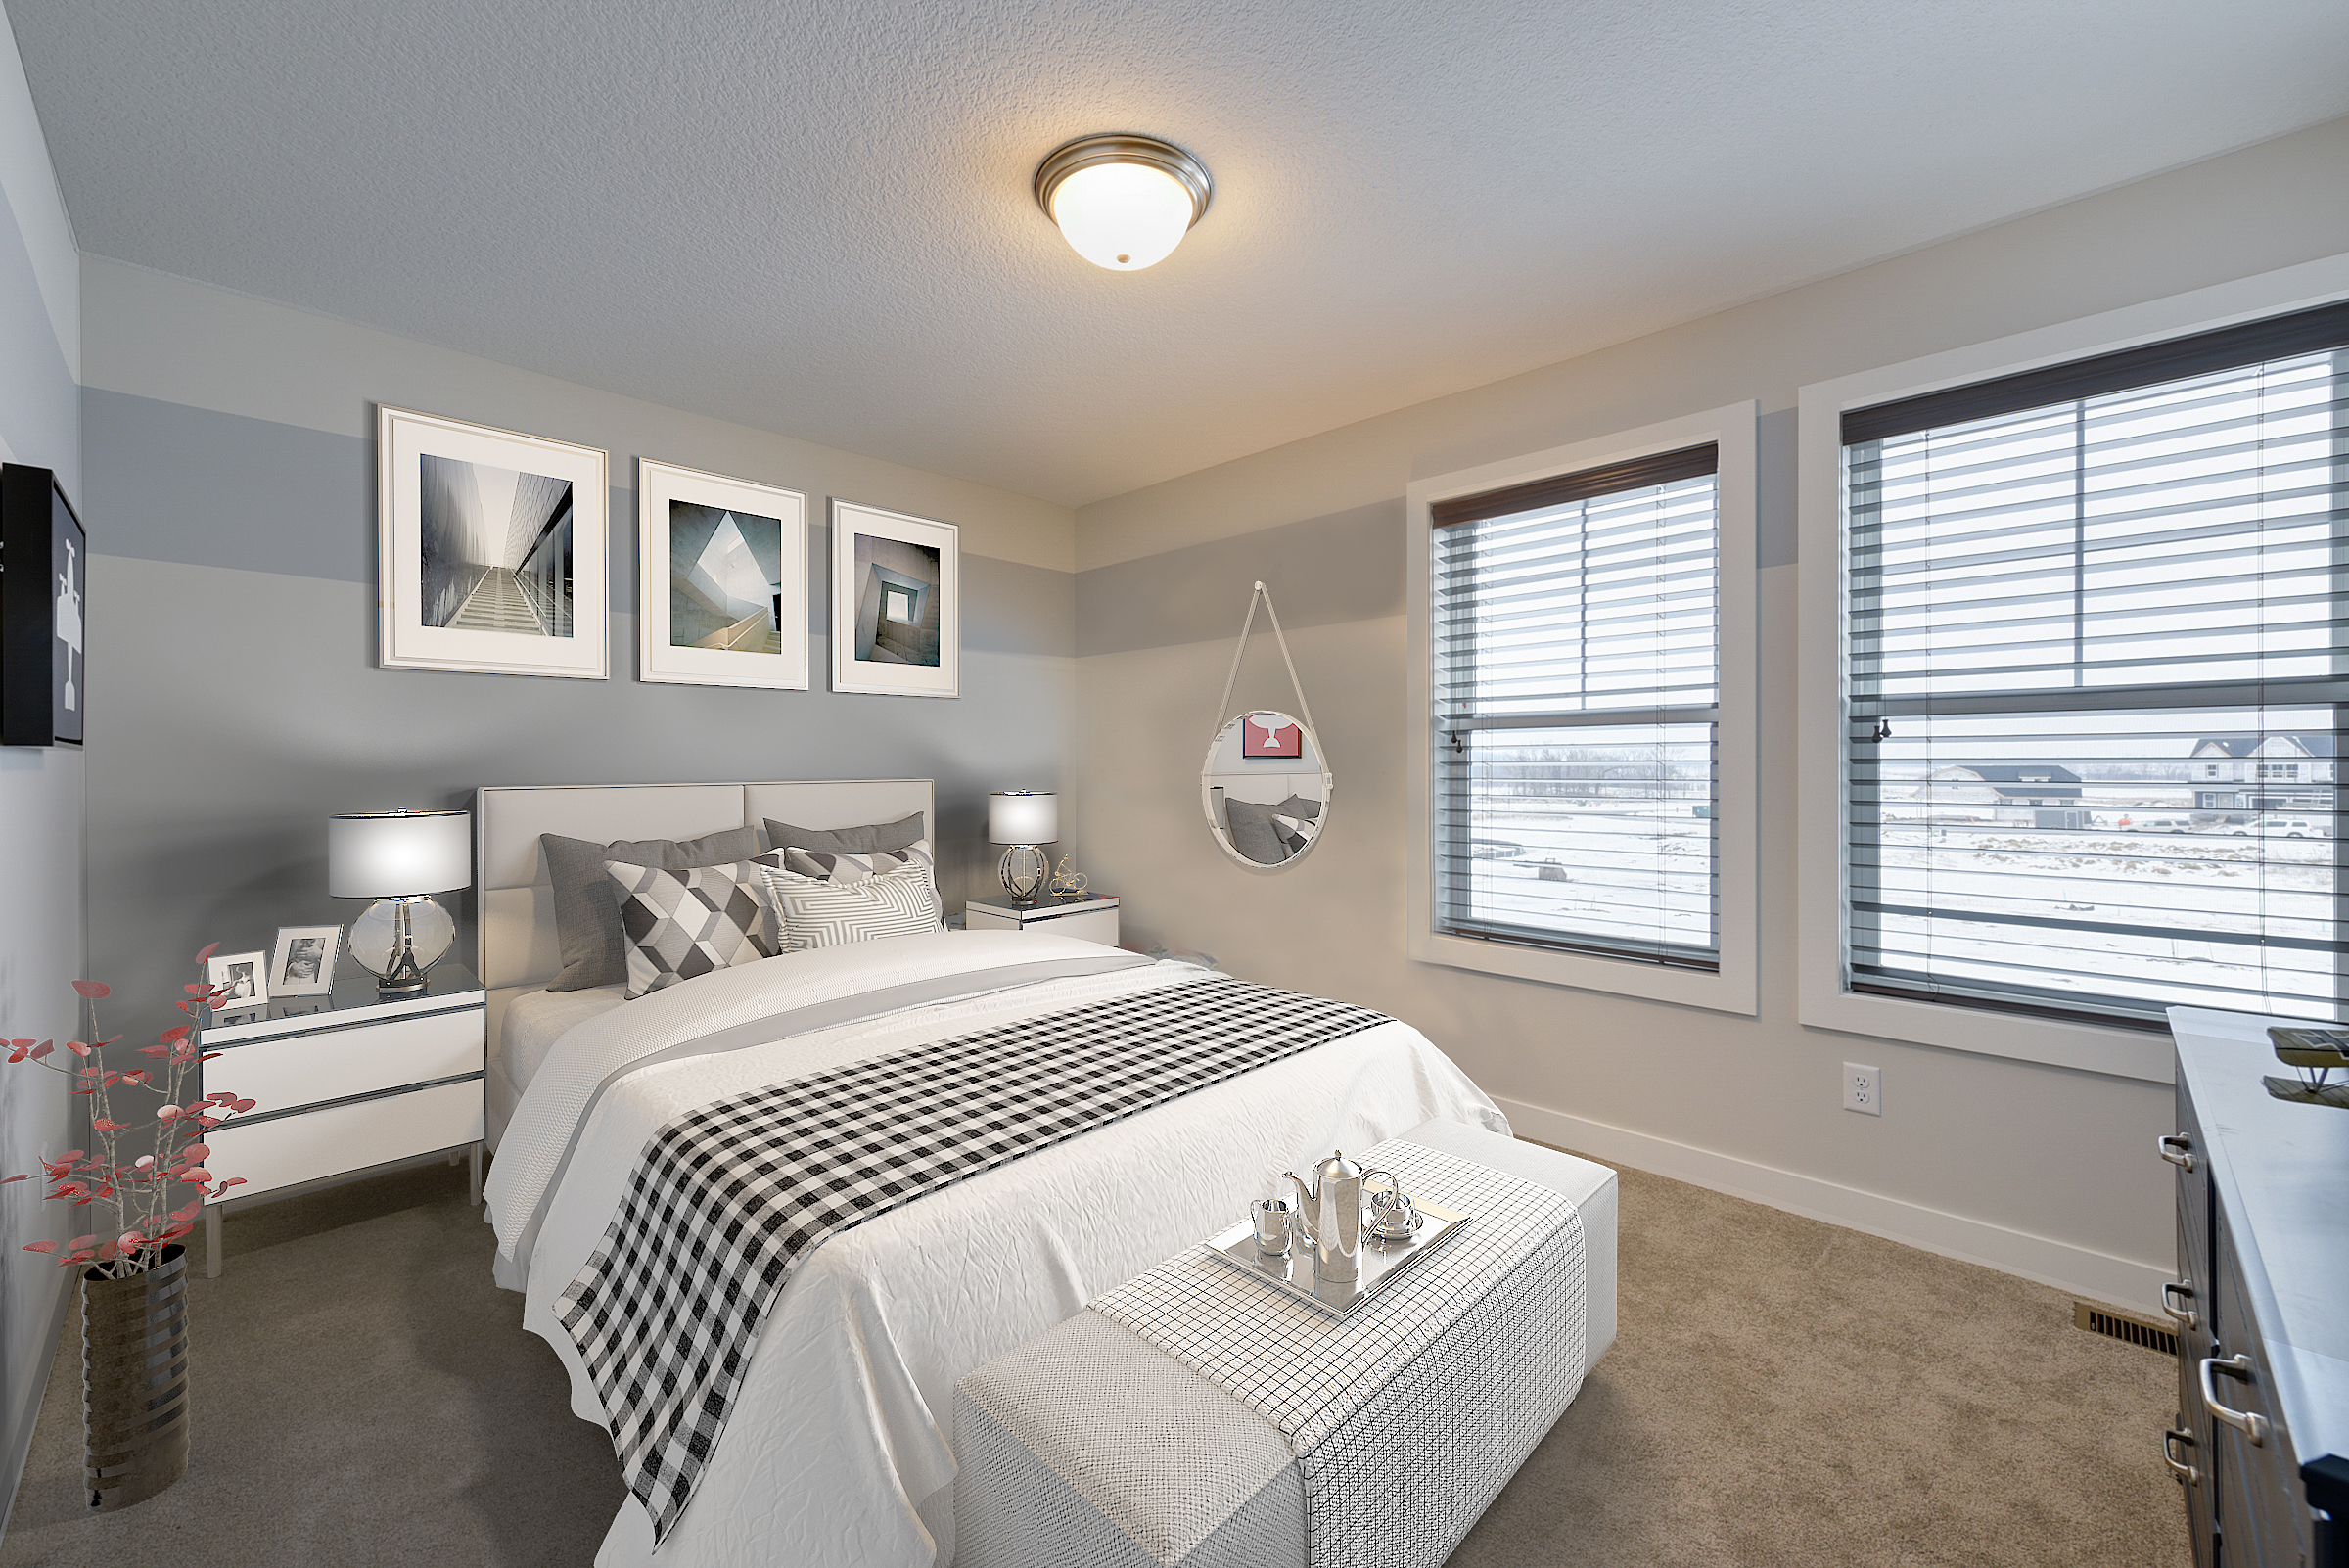 Virtual Decors Offers Brings to Life Real Estate Deals with Immersive Technology and Virtual Staging